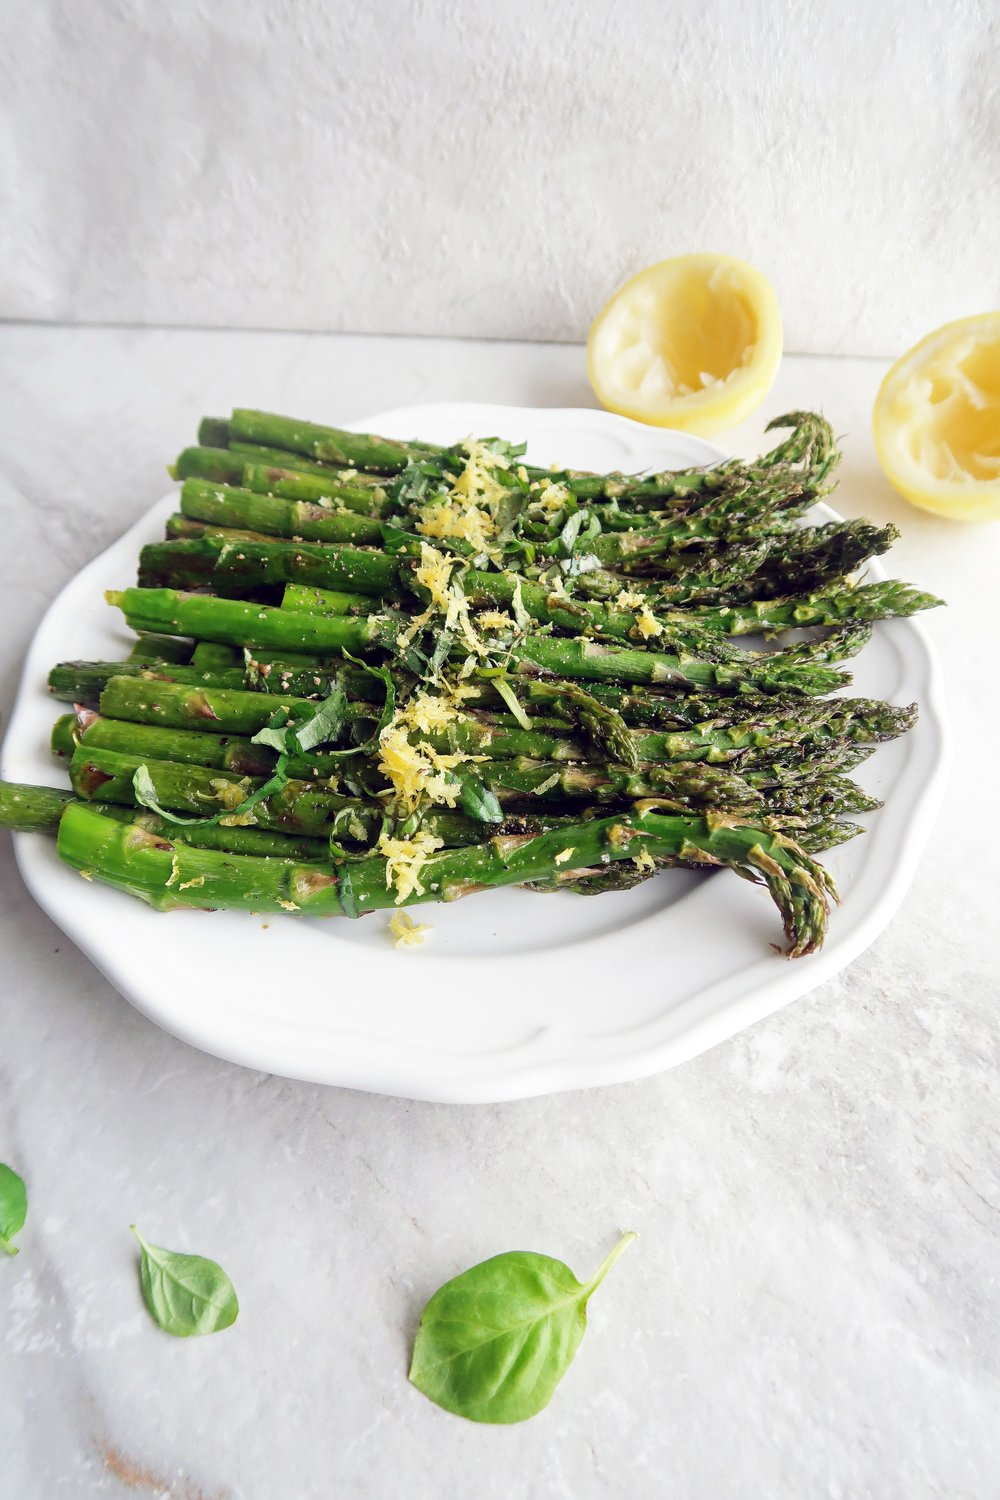 Vegan and gluten-free roasted asparagus with lemon and fresh basil on a white plate.